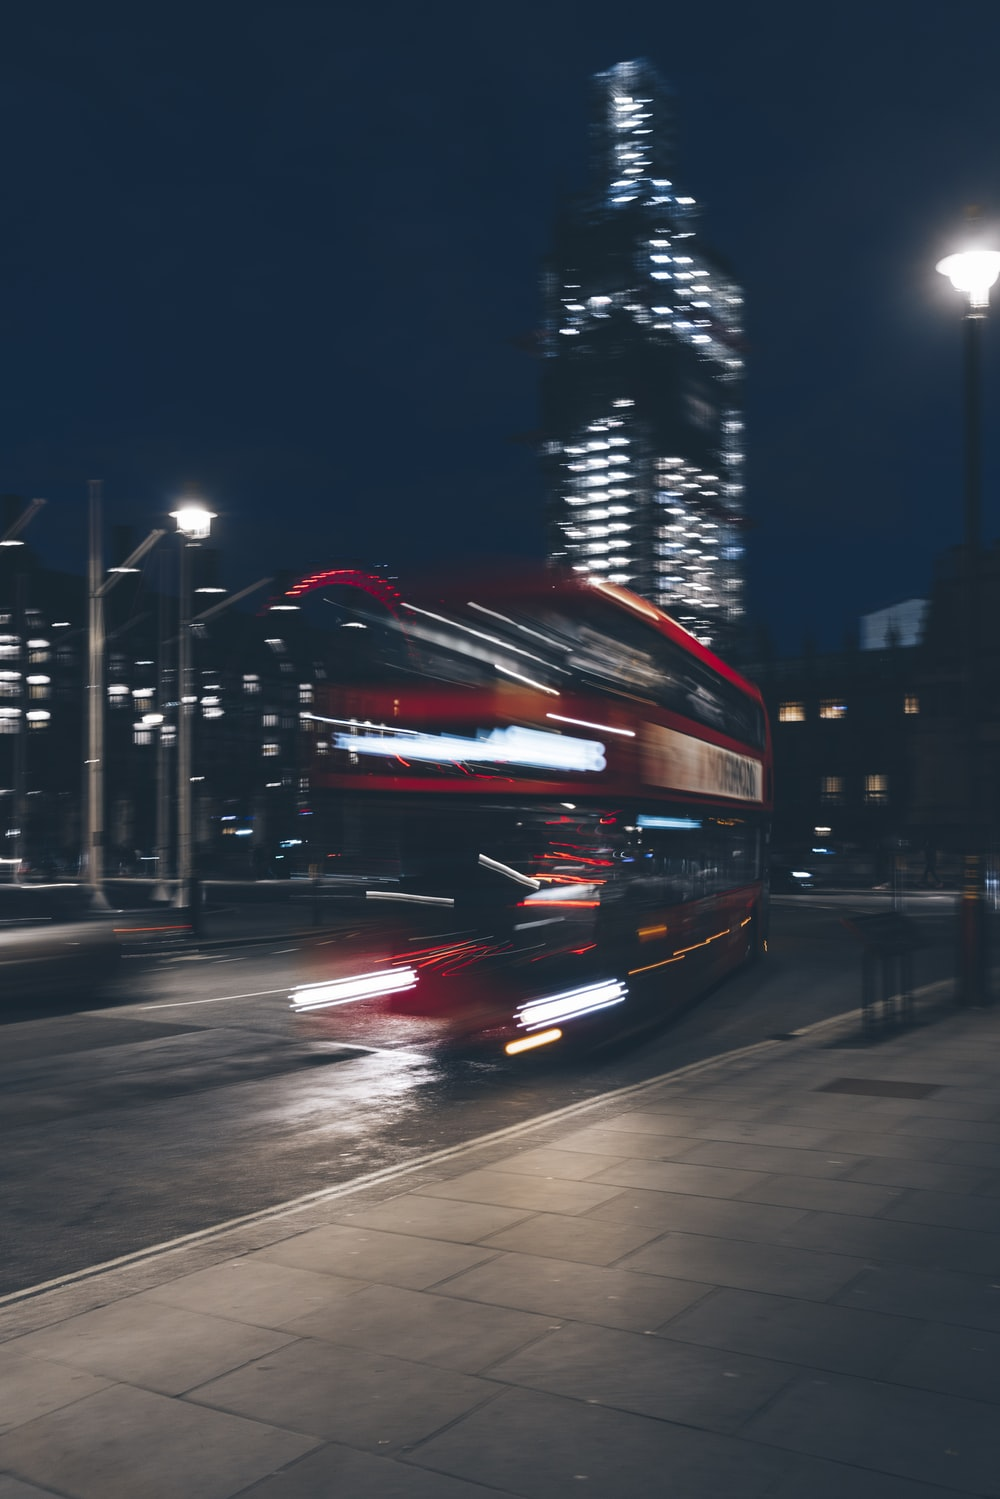 red double deck bus photograph